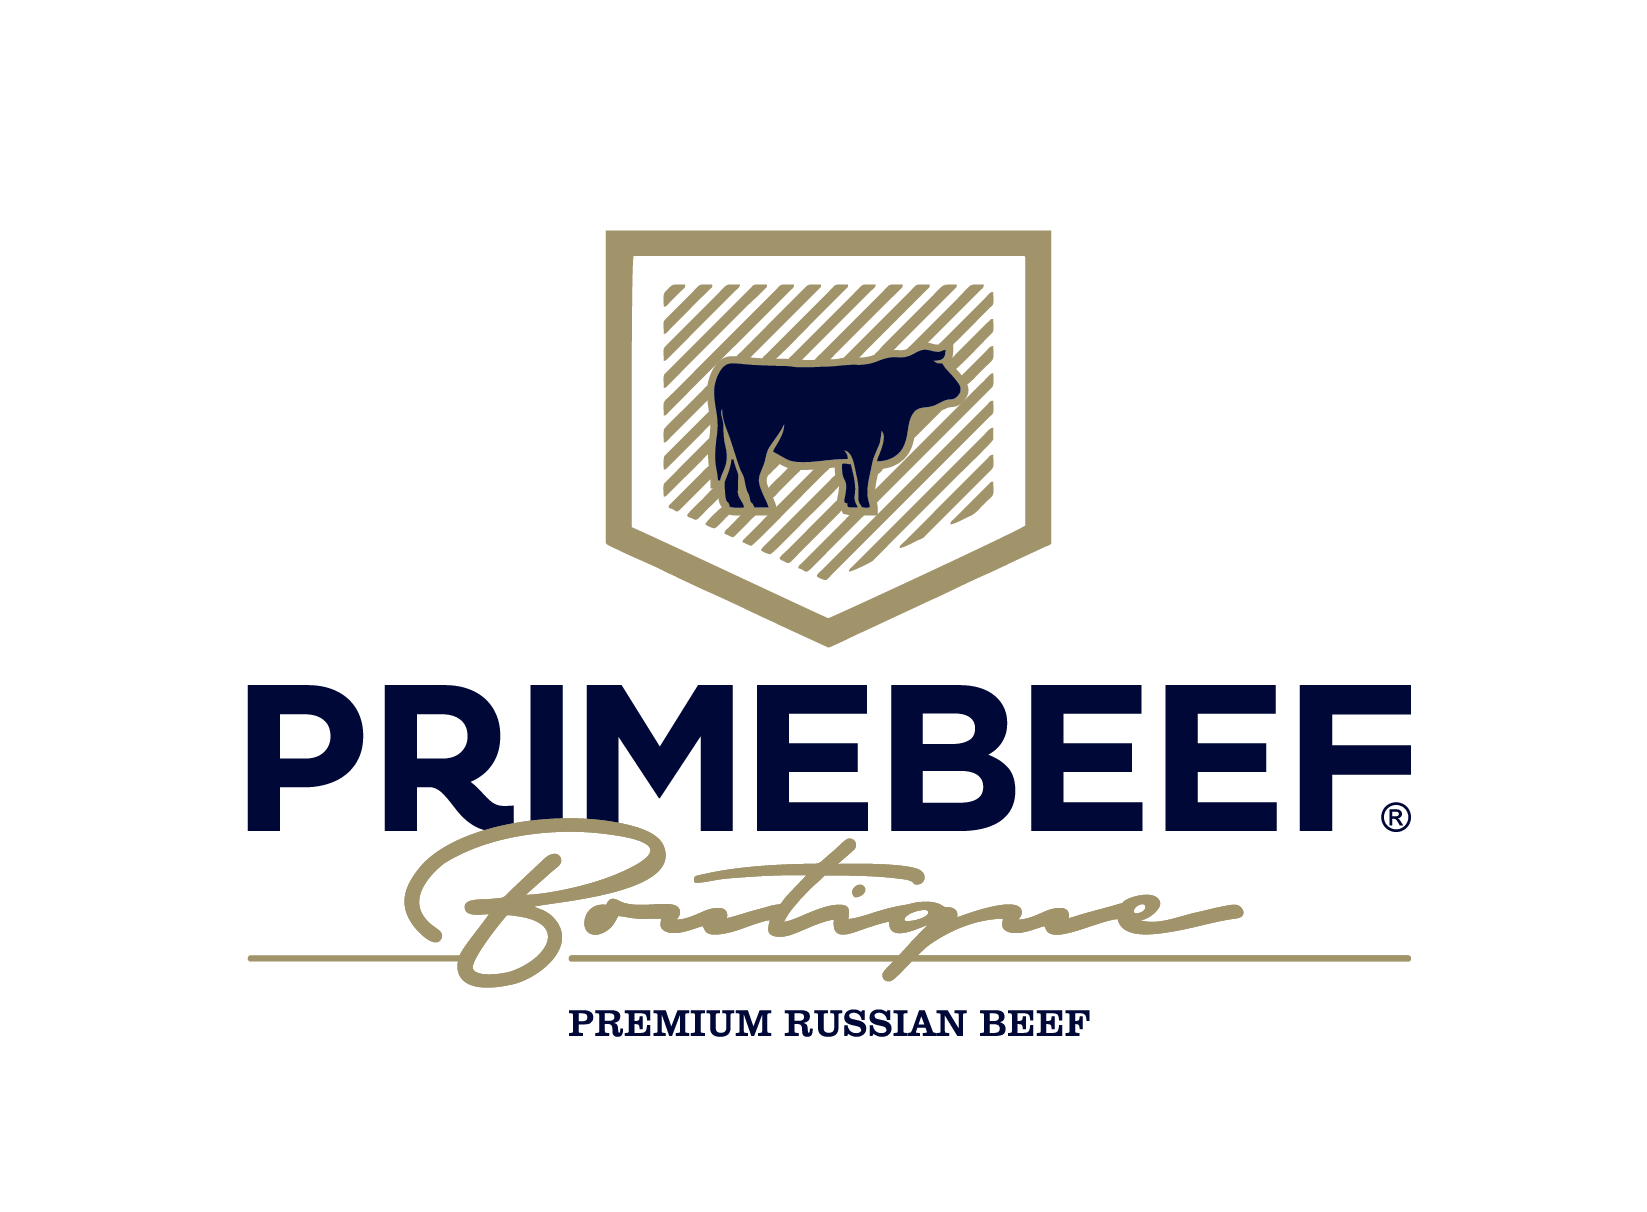 PRIMEBEEF Boutique